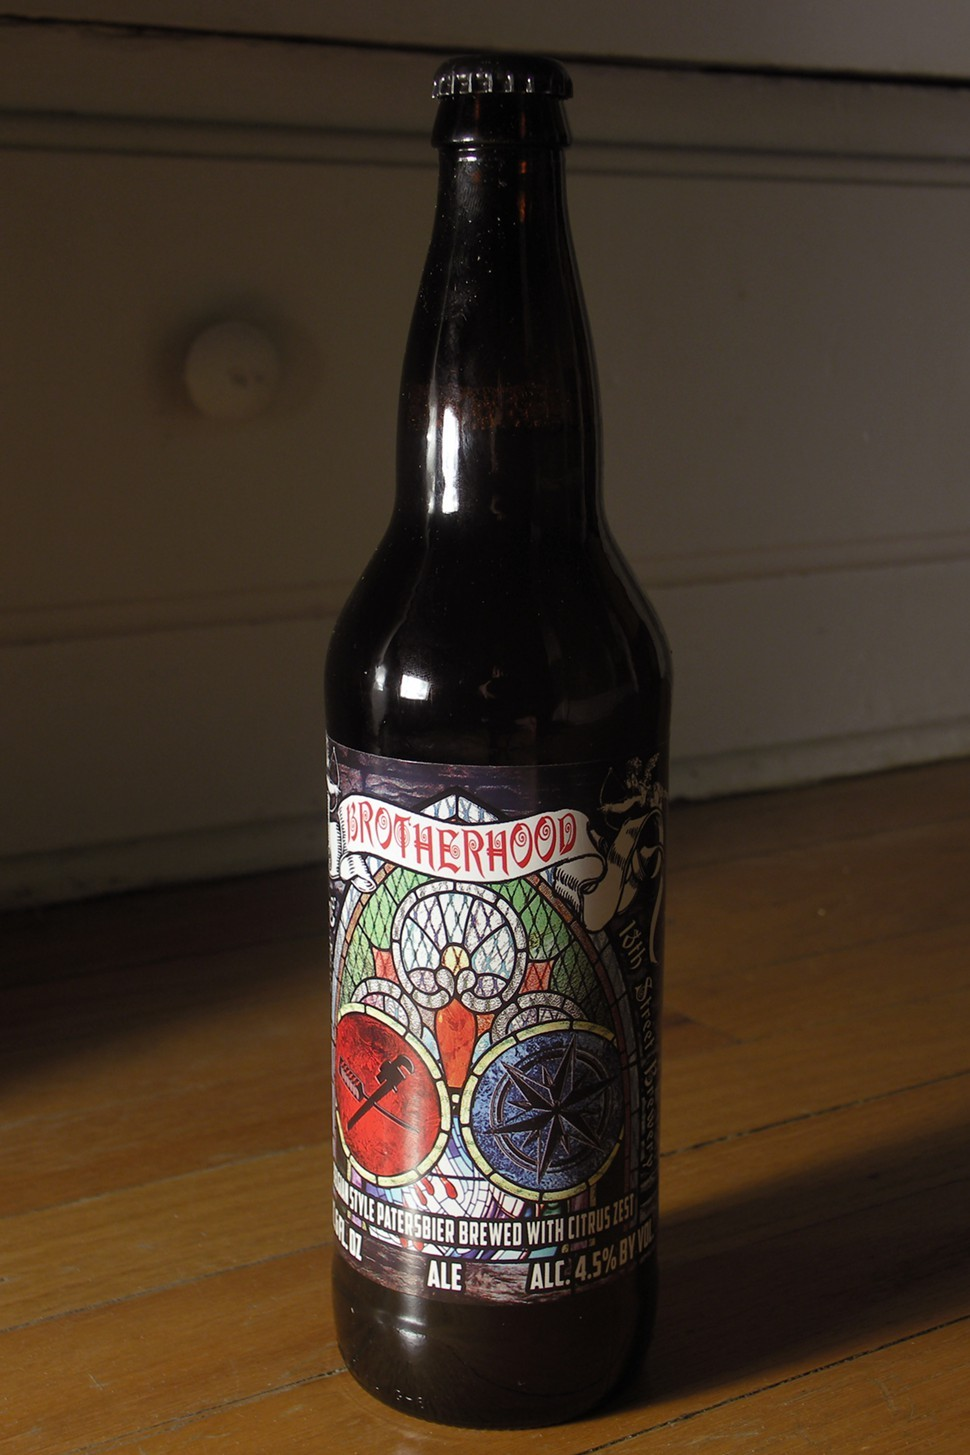 The Brotherhood by 18th Street Brewery and Pipeworks